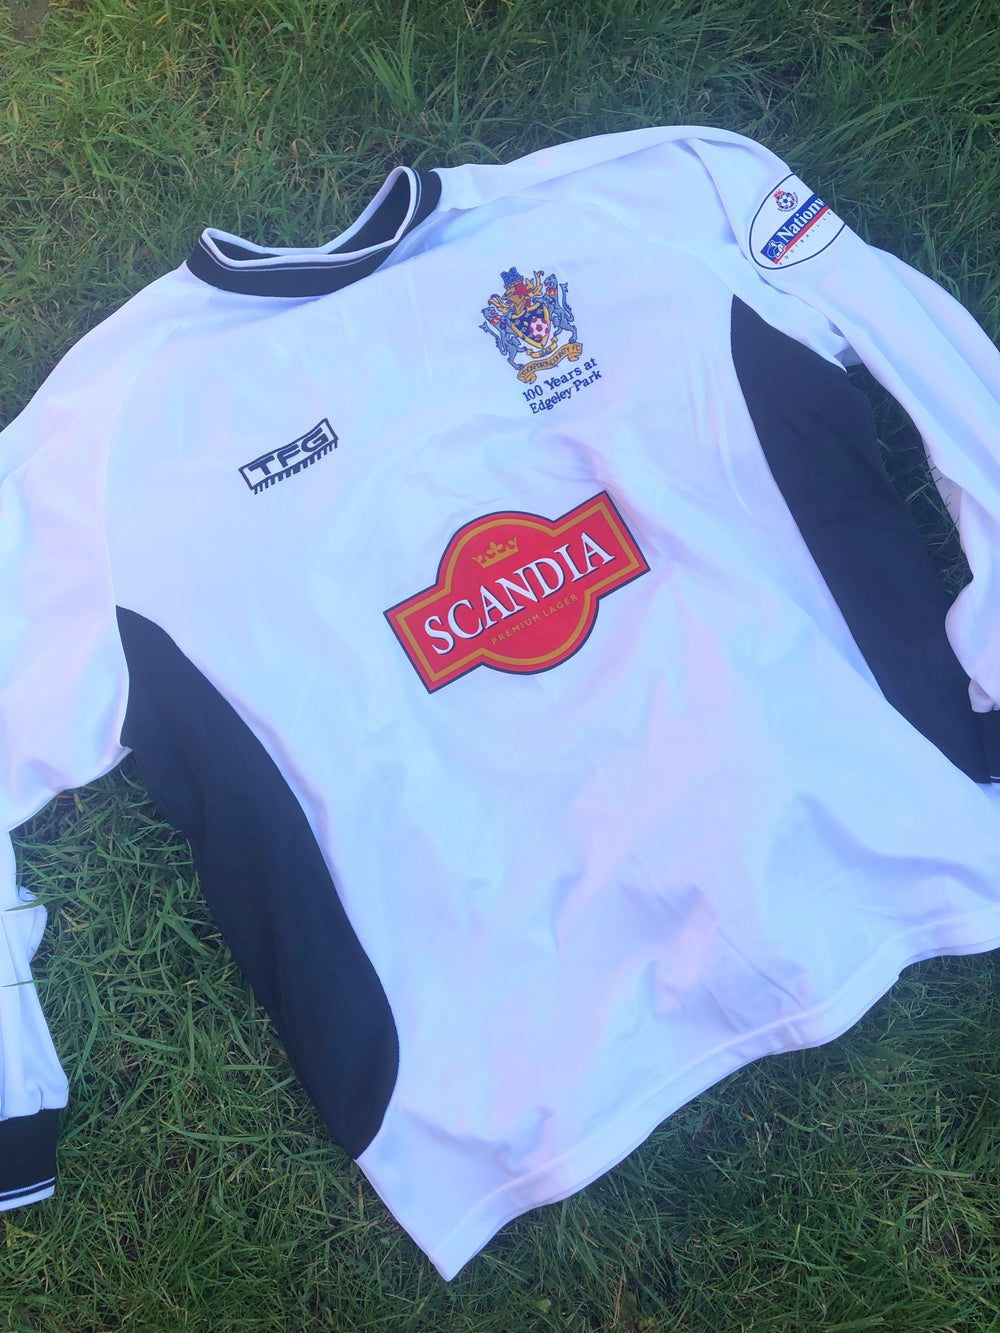 Image of Match worn 2002/03 Dave Challinor away shirt